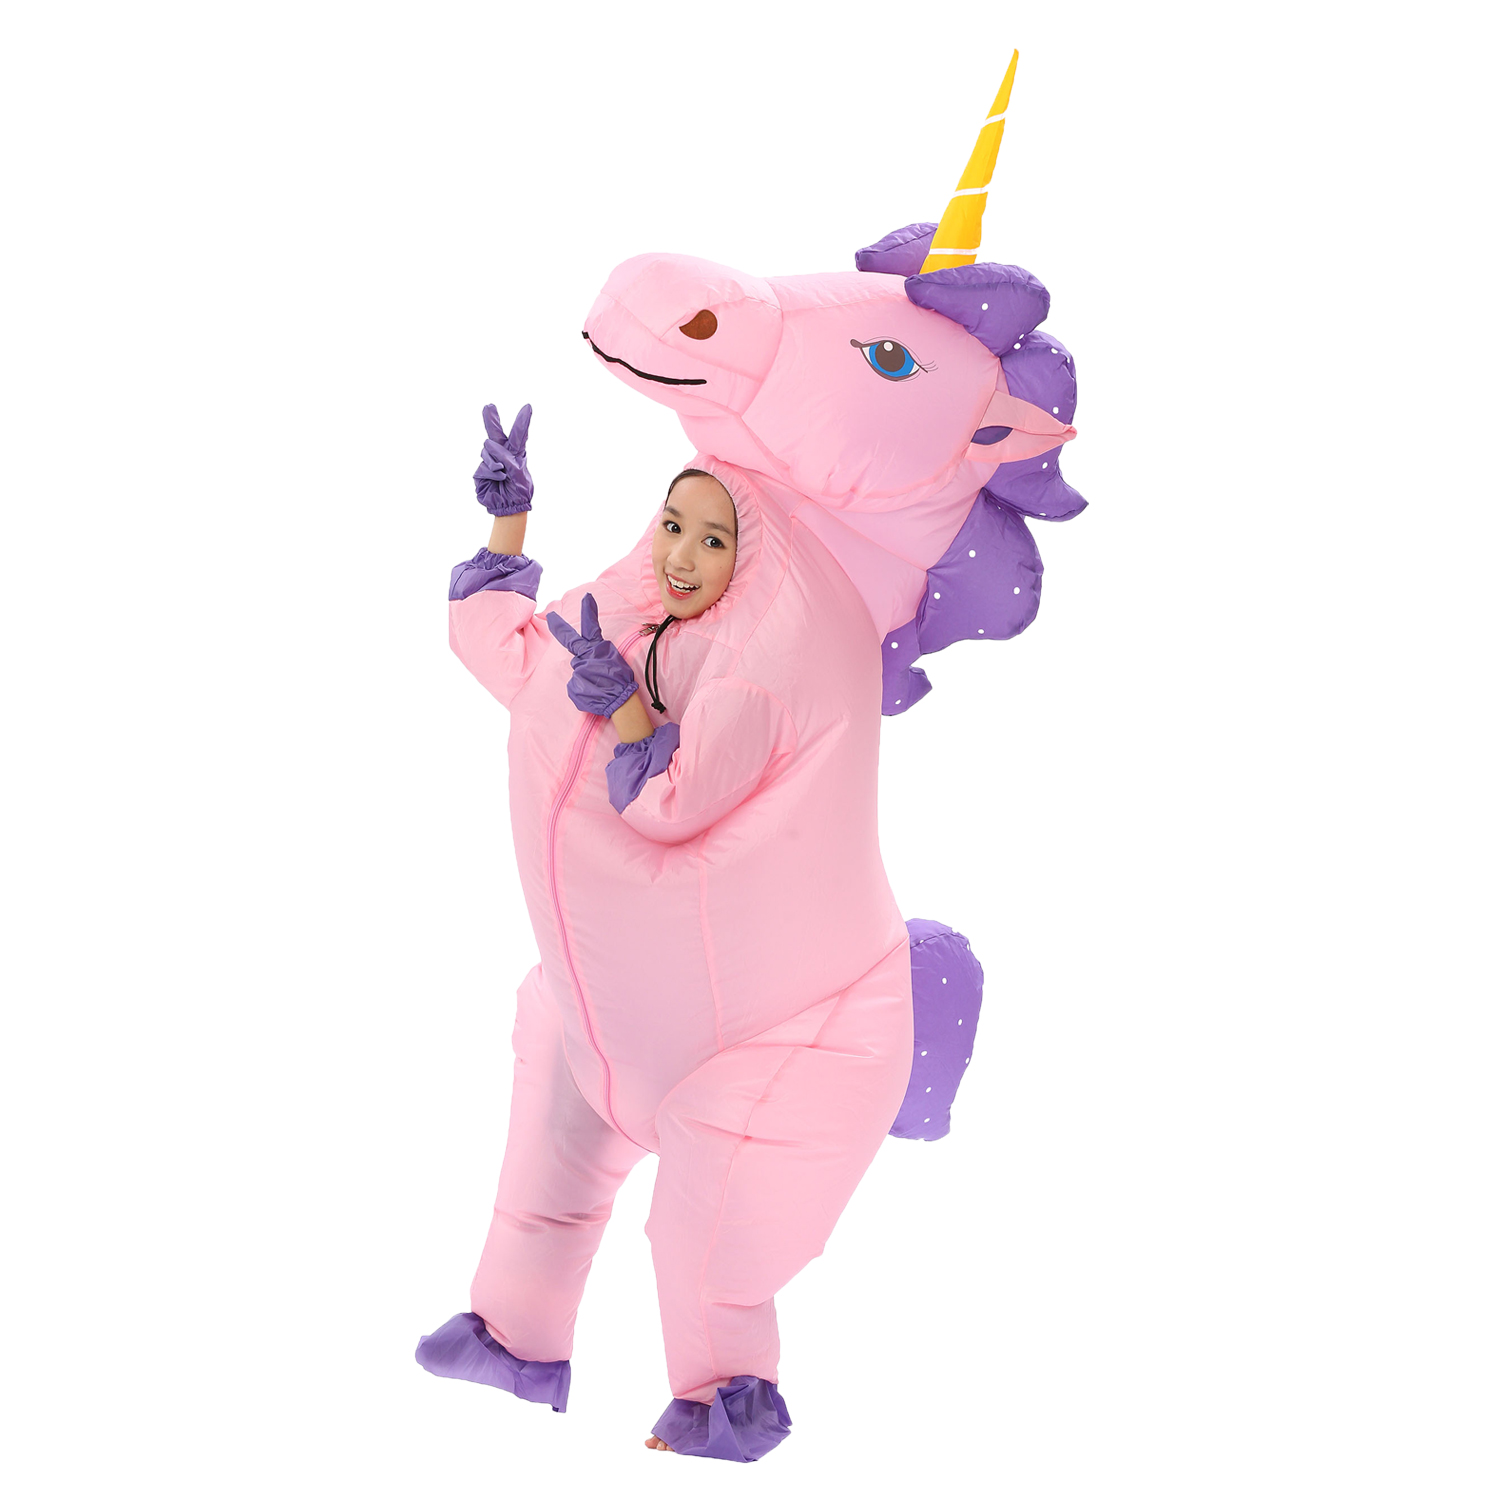 609e4be2b0eb New Adult Kids Inflatable Unicorn Costume Pony Halloween Costumes for Women  Men Cosplay Fantasia Party Inflatable Suit Jumpsuit